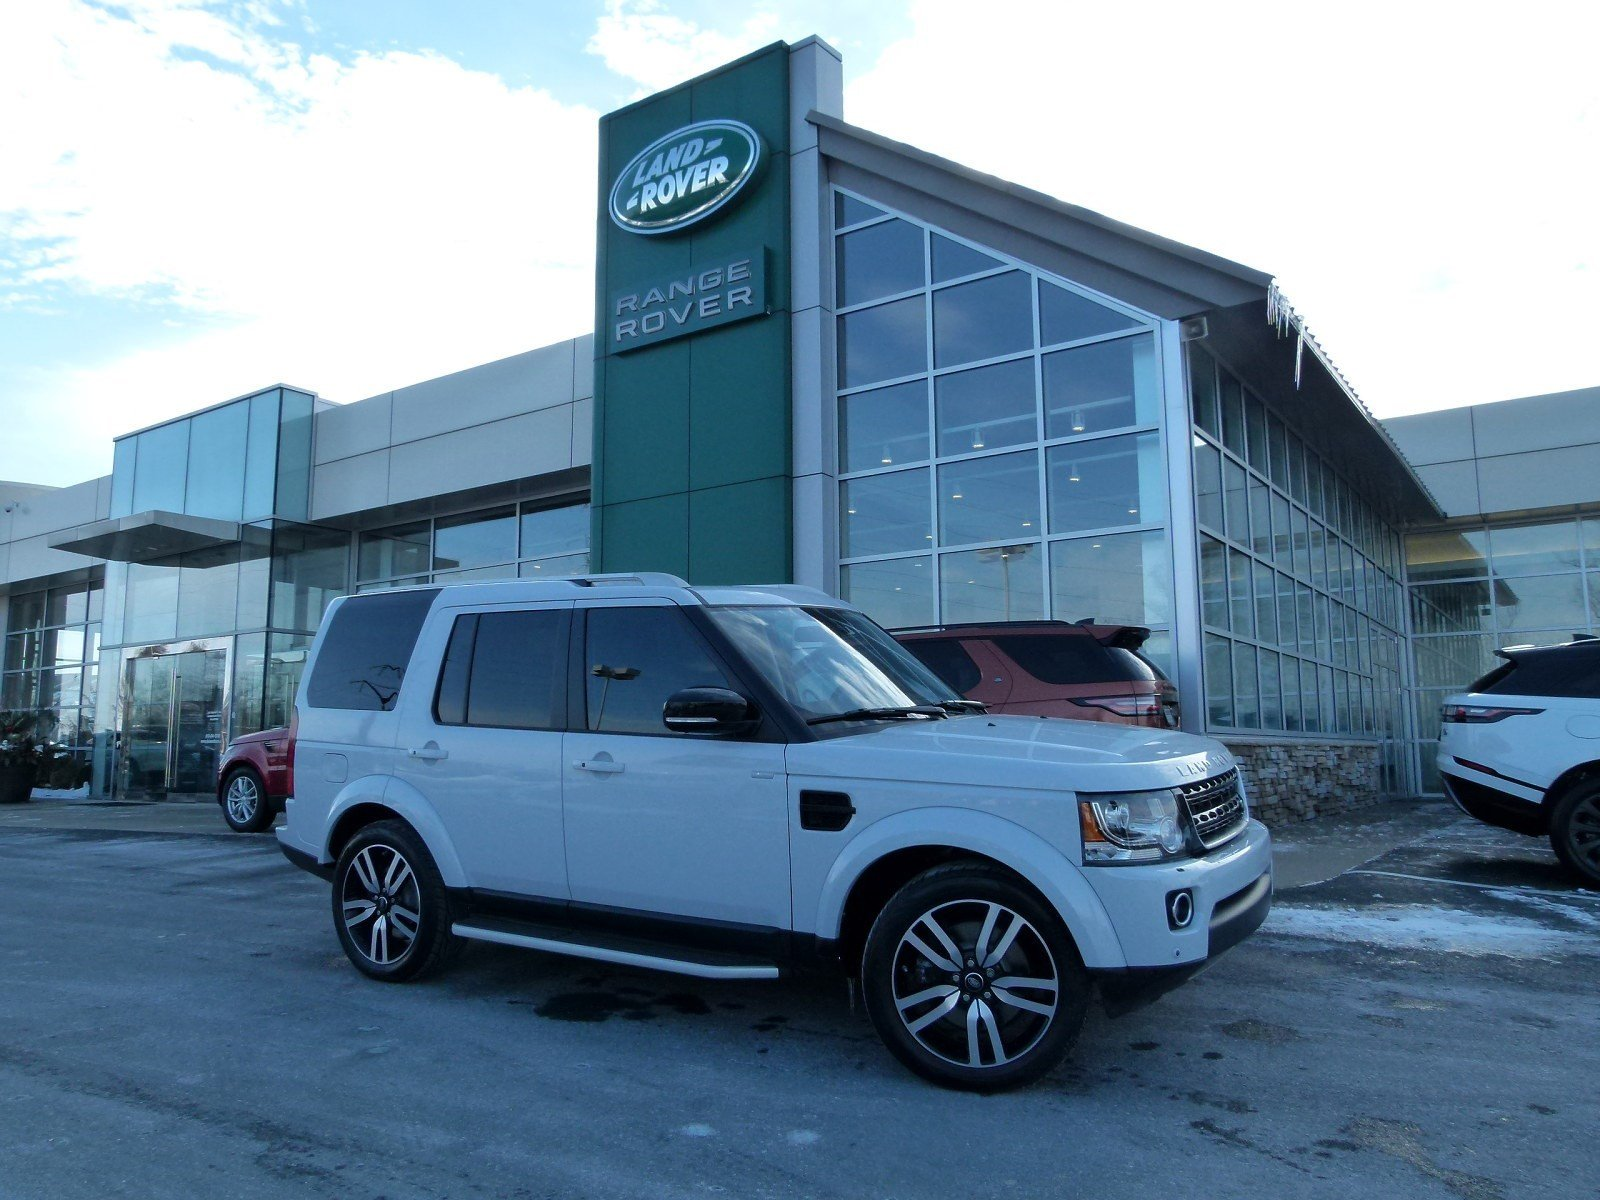 Pre-Owned 2016 Land Rover LR4 HSE LUX Landmark Edition Four Wheel Drive Sport Utility